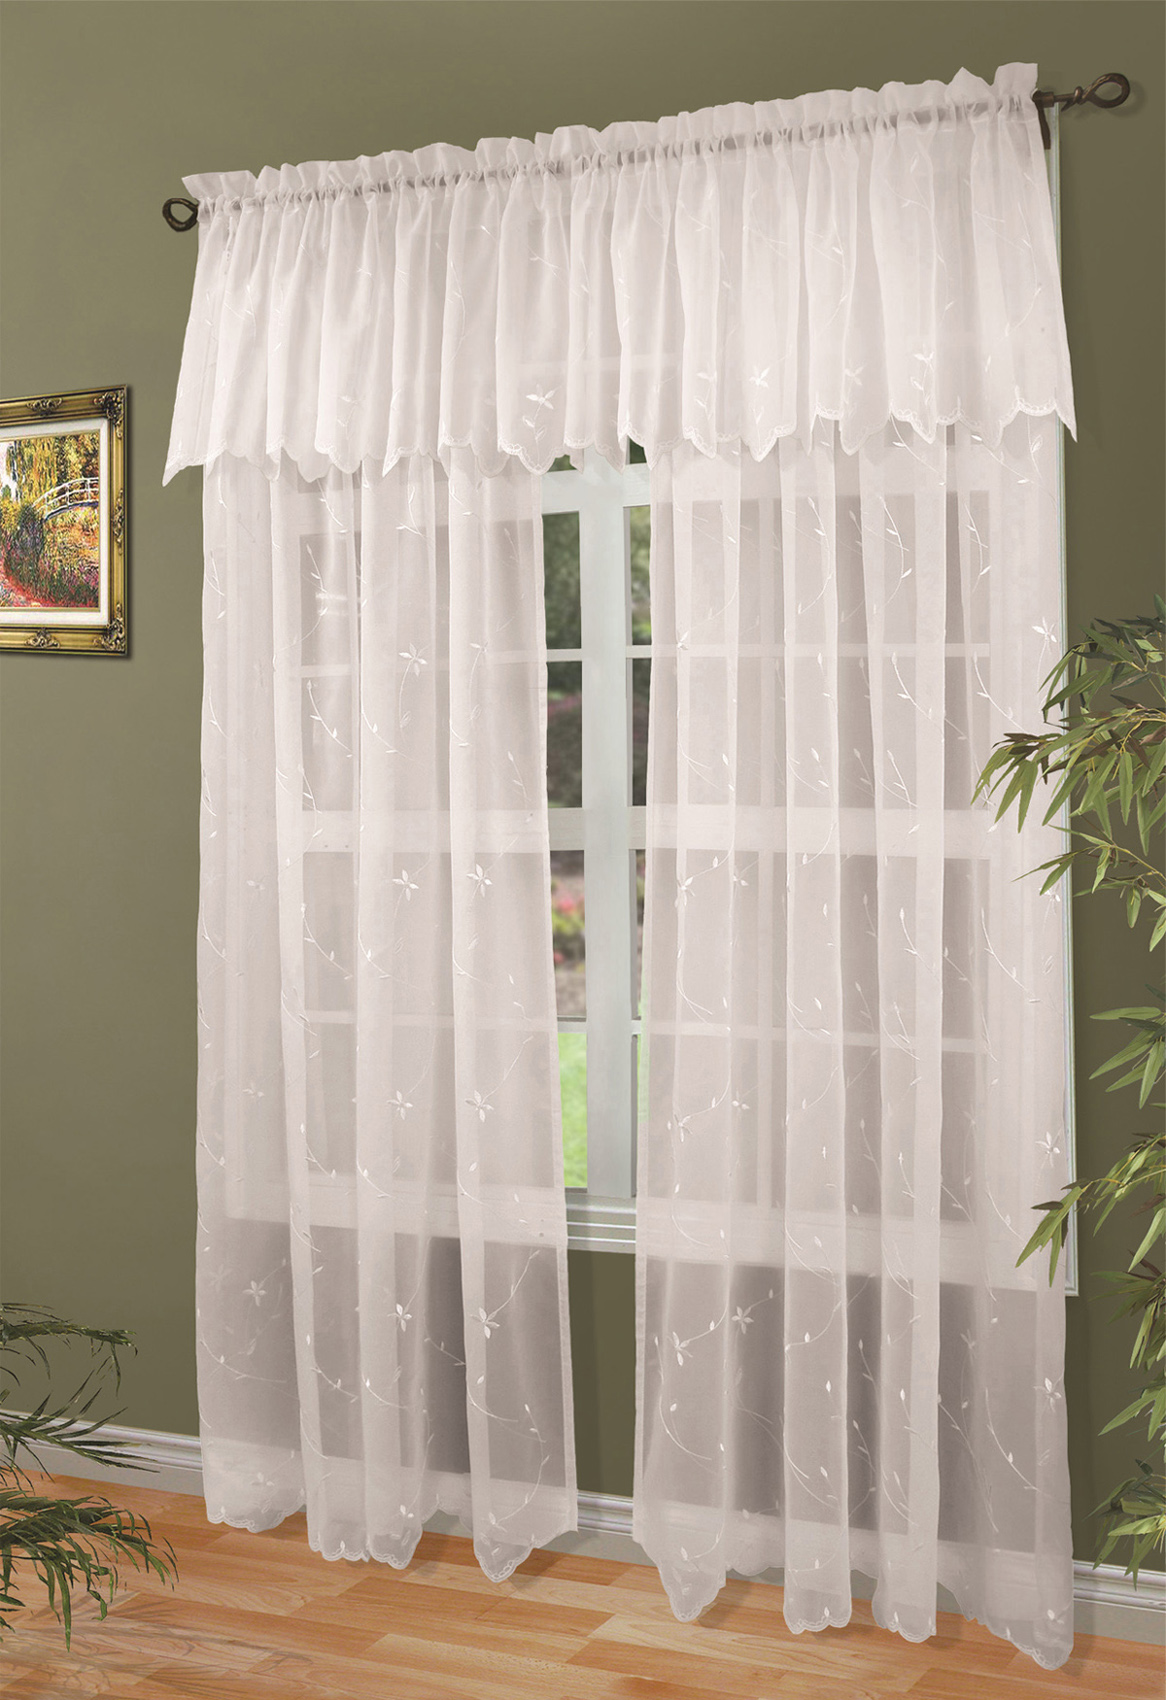 Sheer Window Curtains TheCurtainShopcom